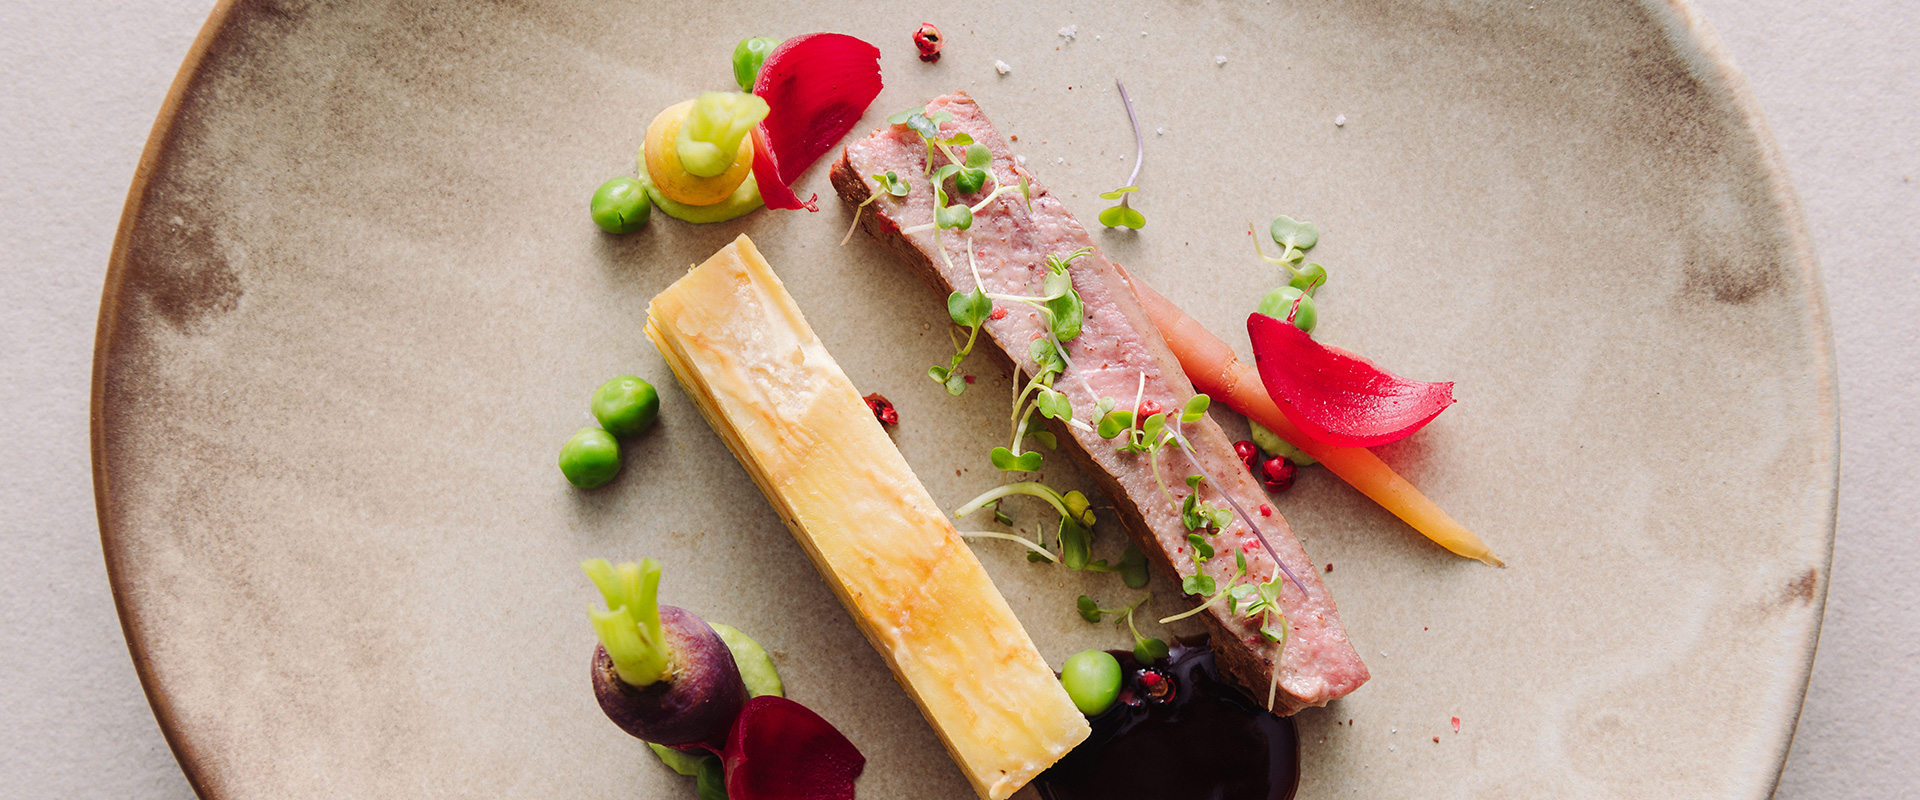 collective-hospitality-pork-and-parsnip-starter